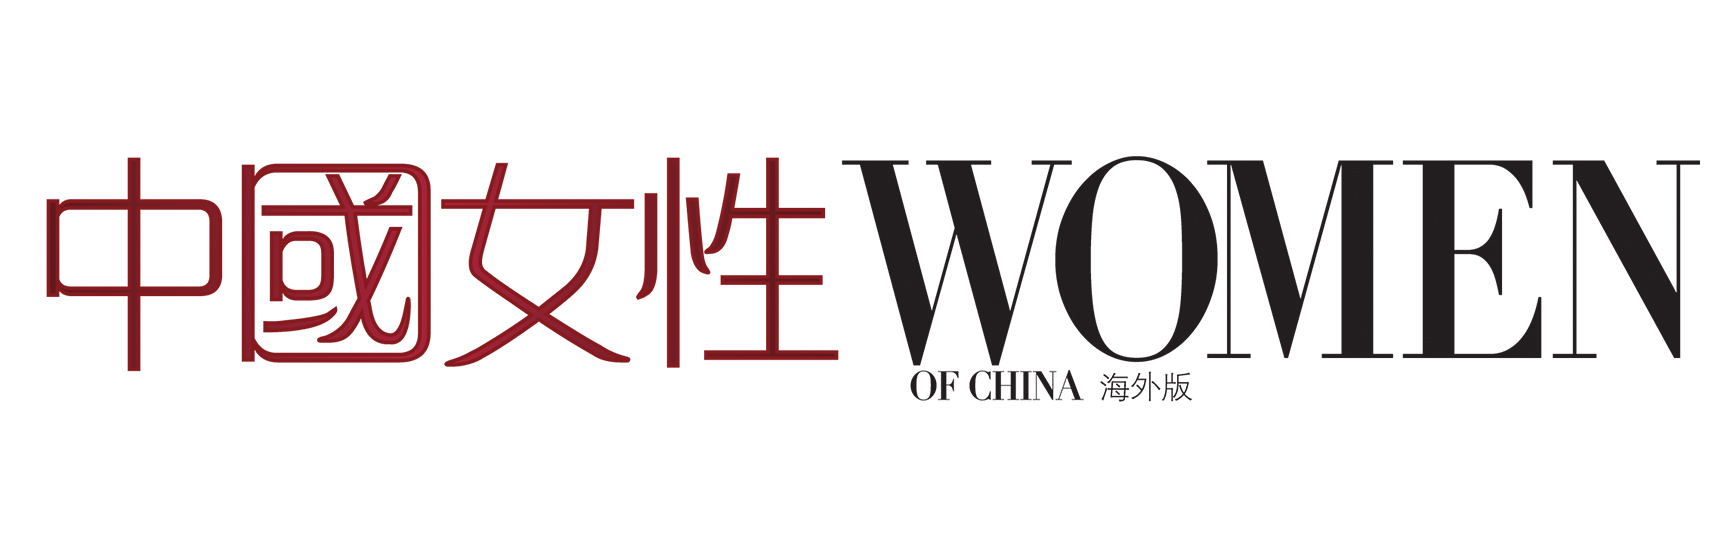 Print Media - Women of China